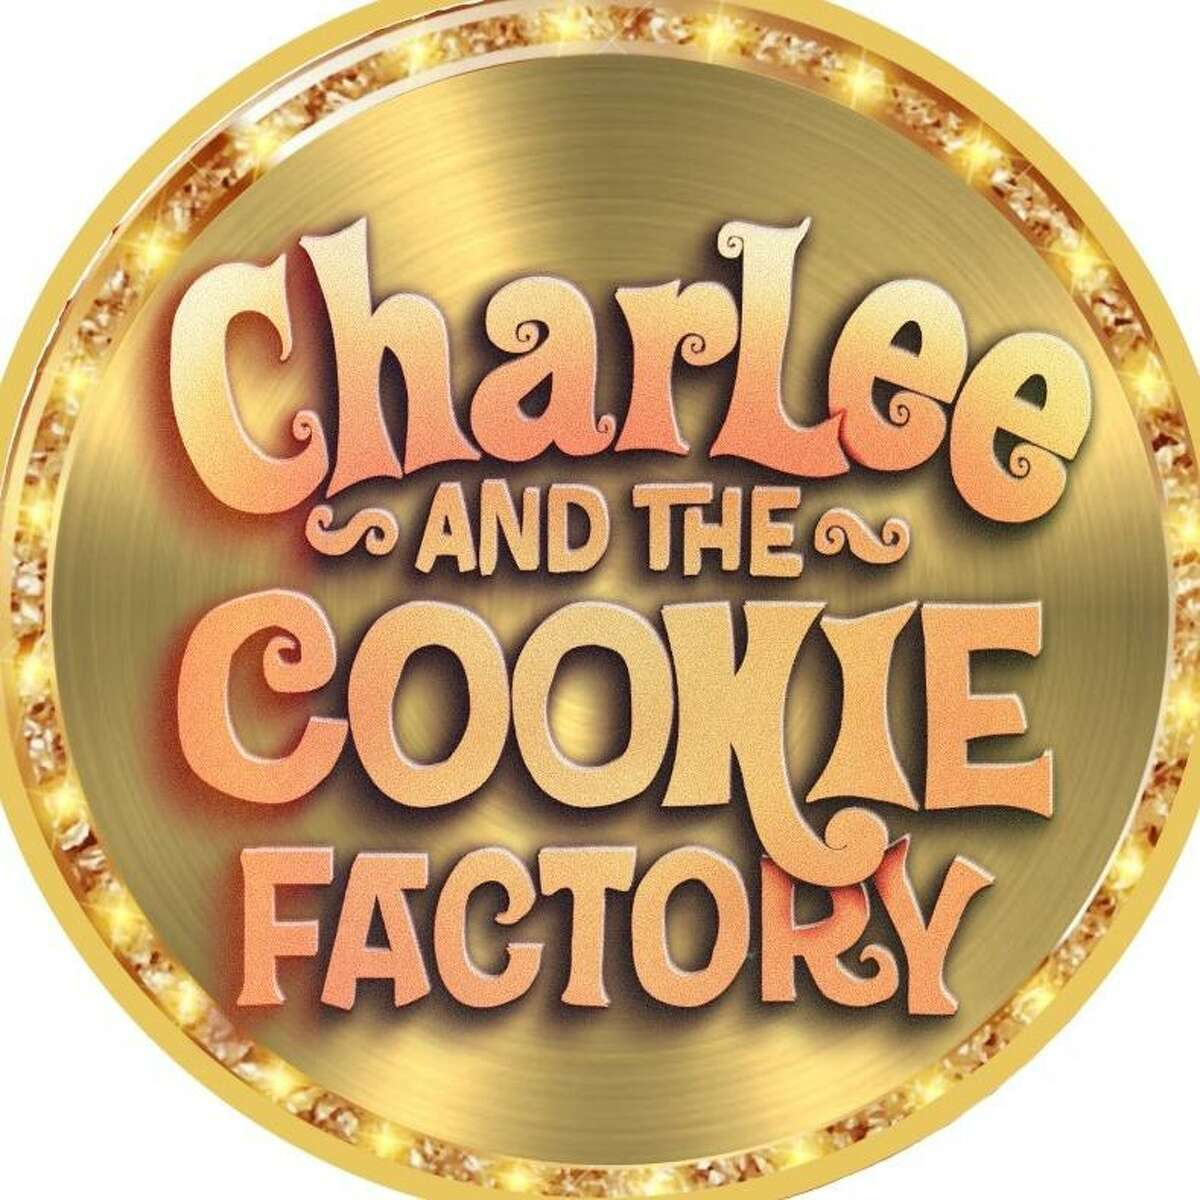 Charlee and the Cookie Factory is coming to the colorful shopping center just behind Daddio's Burger on the corner of Calder Avenue and Lucas Drive.